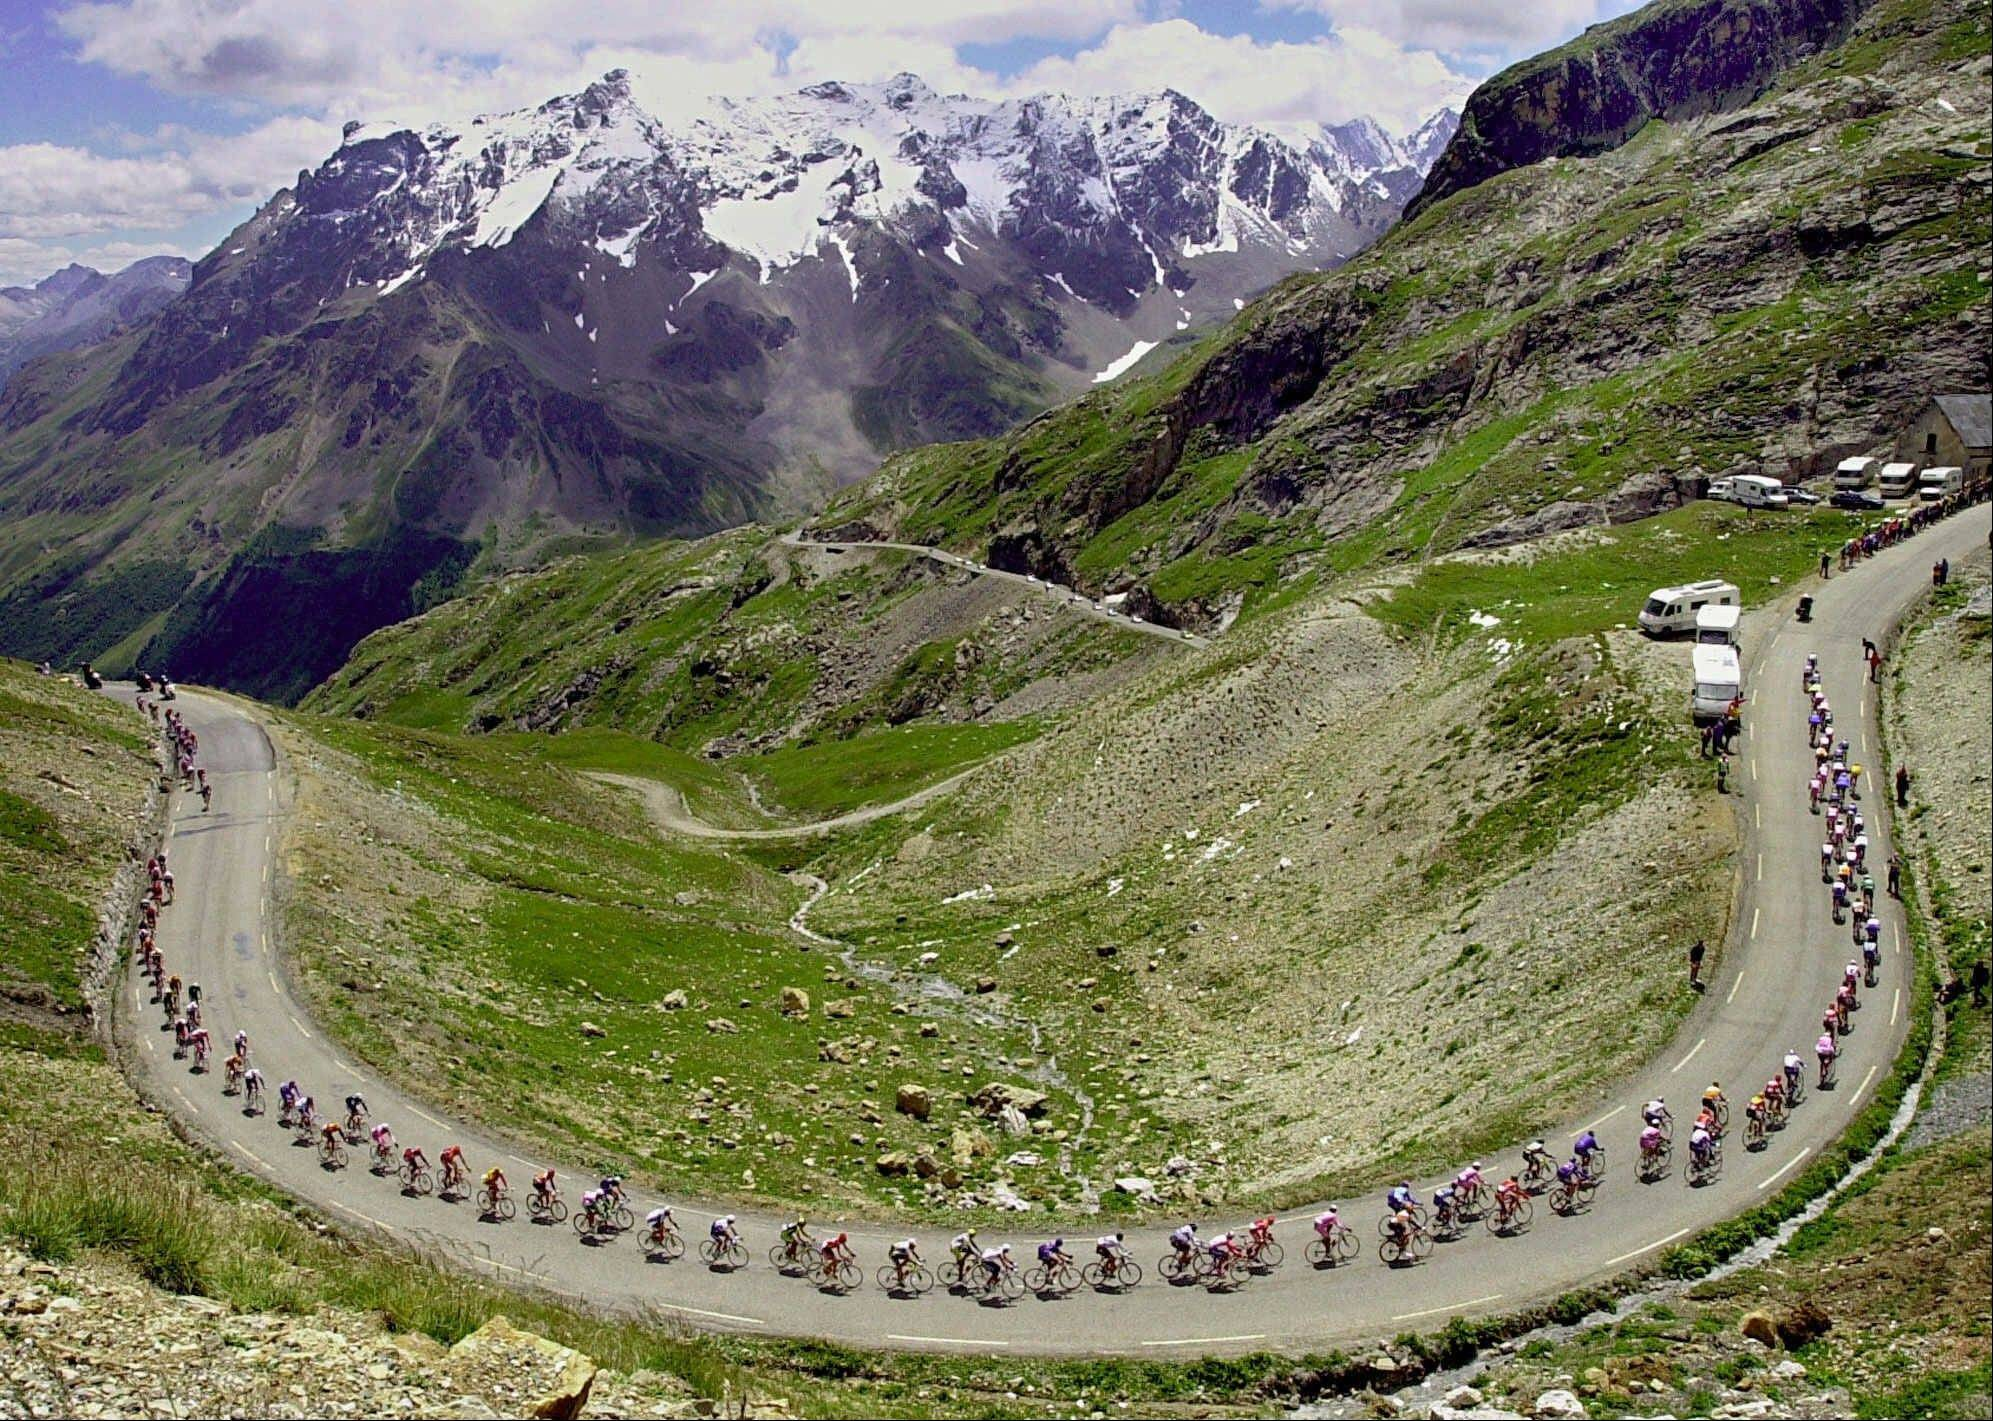 The pack climbs the Galibier pass during the 15th stage of the Tour de France in 2000.